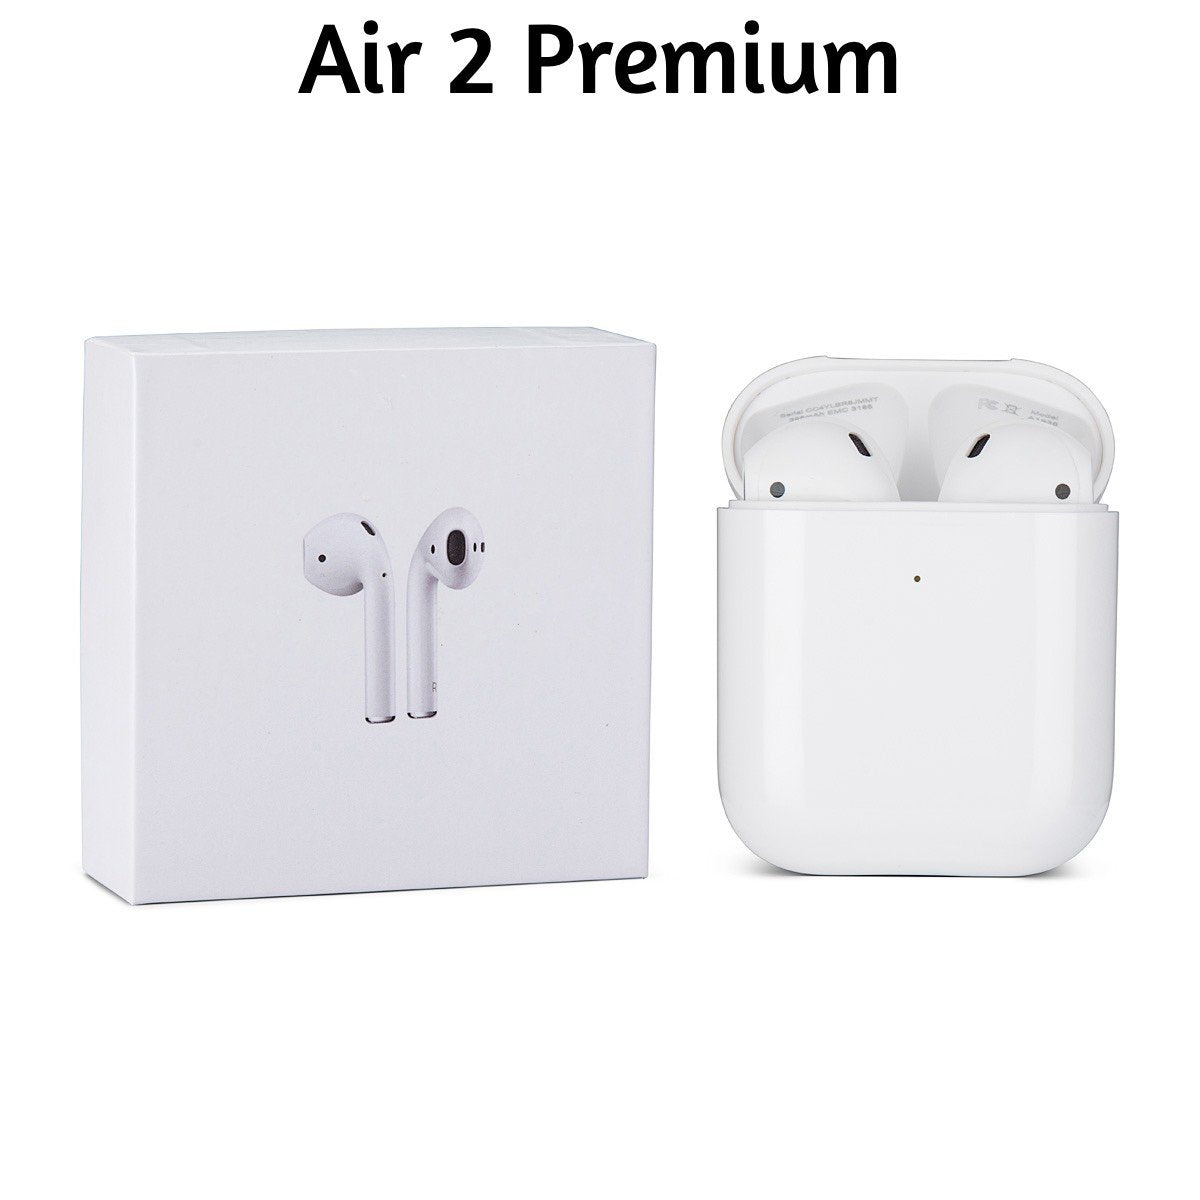 Aire 2 Supercopy Airpods 2